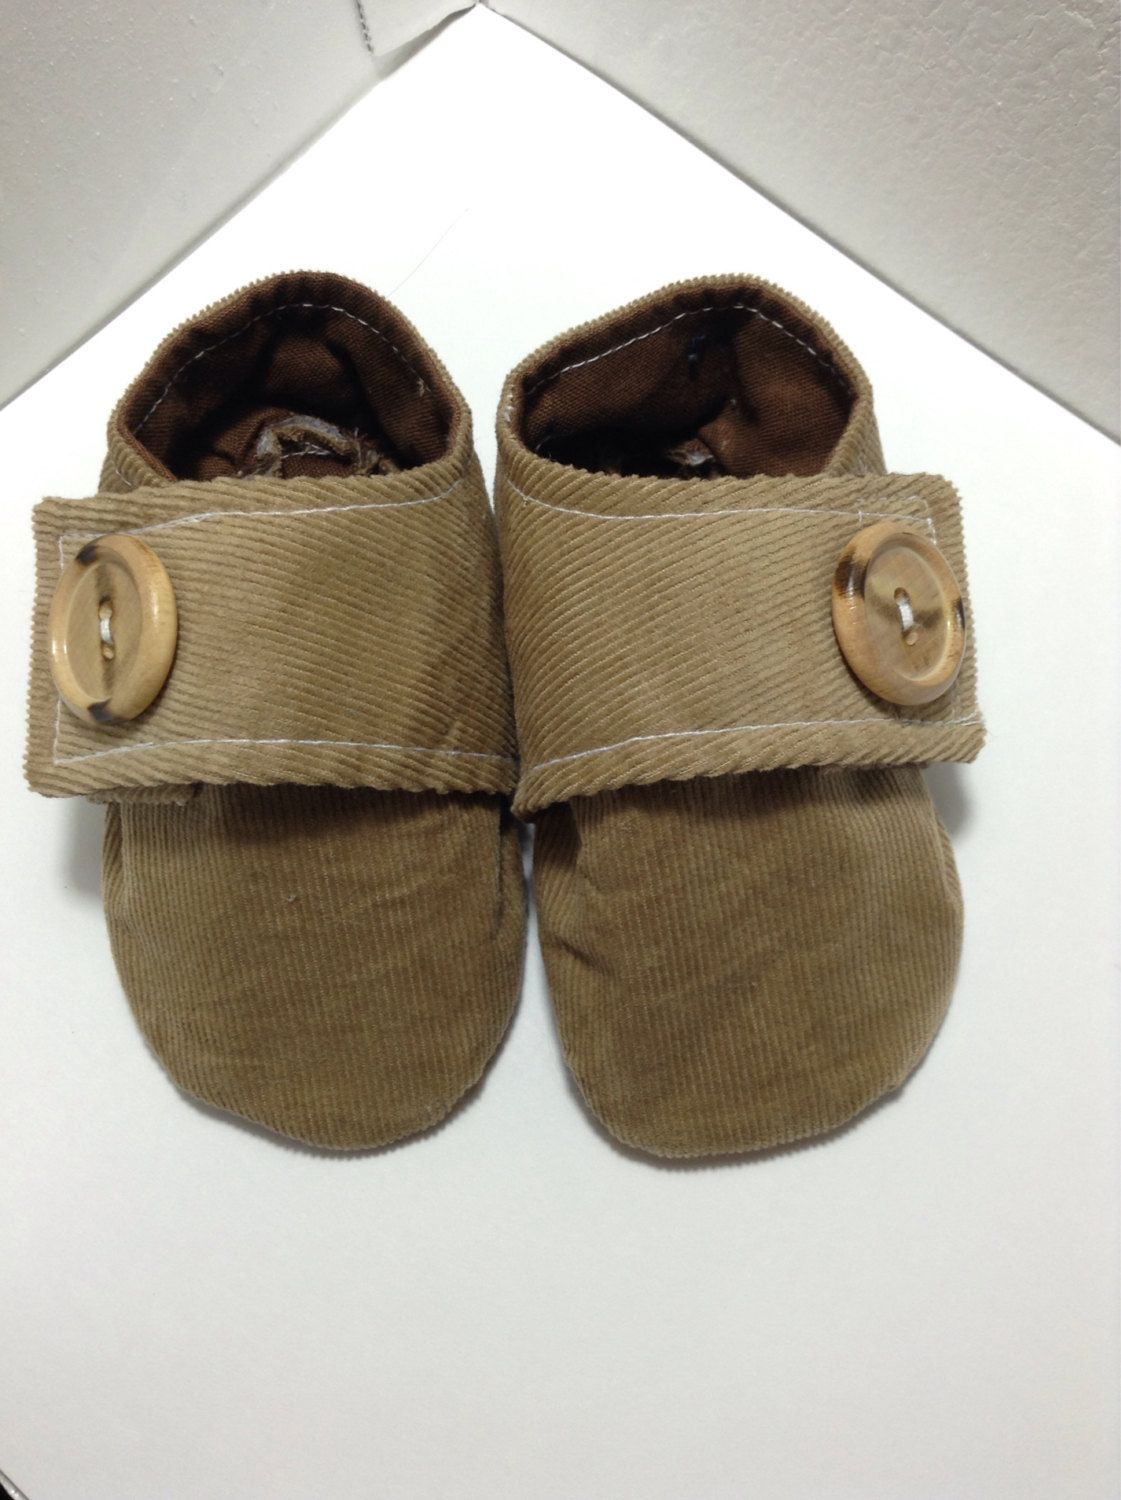 """Baby Corduroy Shoes! """"Zeke"""" Style Sizes 0-12 Months by TheRabbitsHat on Etsy https://www.etsy.com/listing/209479489/baby-corduroy-shoes-zeke-style-sizes-0"""